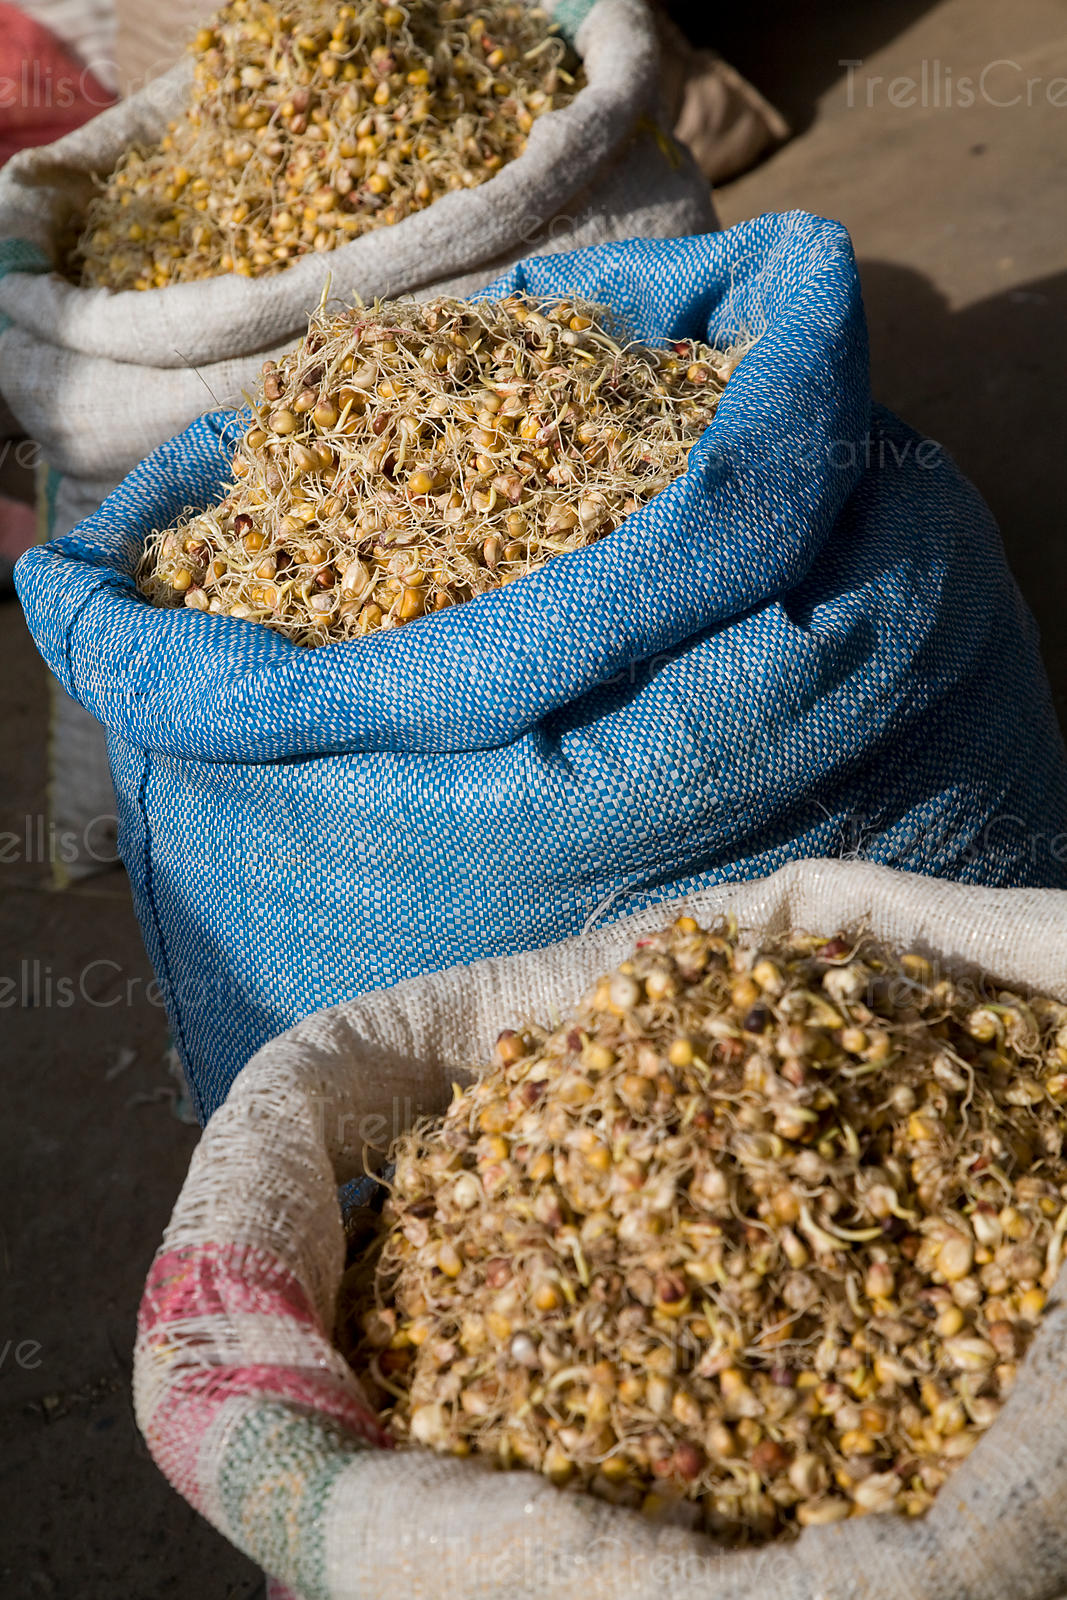 Sacks of giant sprouted corn kernels